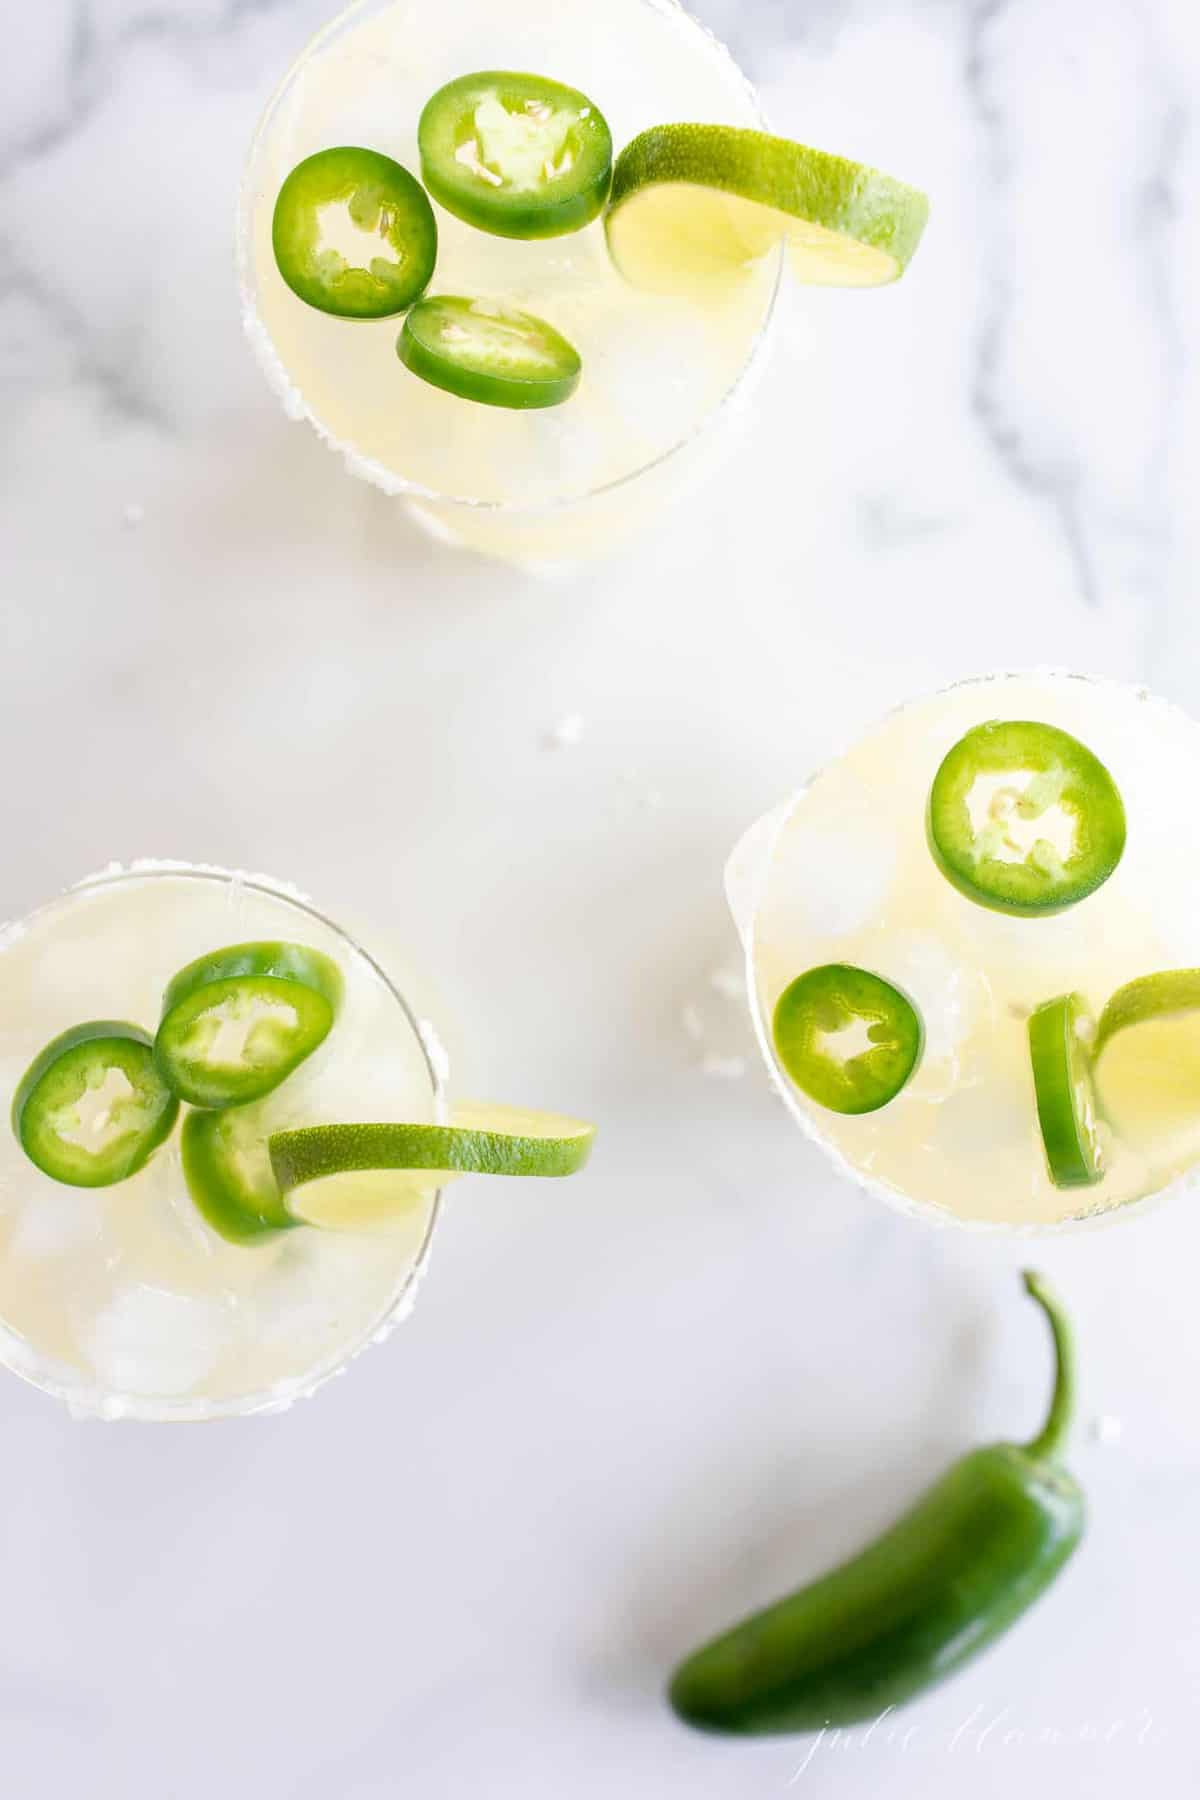 Marble surface, three glasses full of jalapeno margaritas.